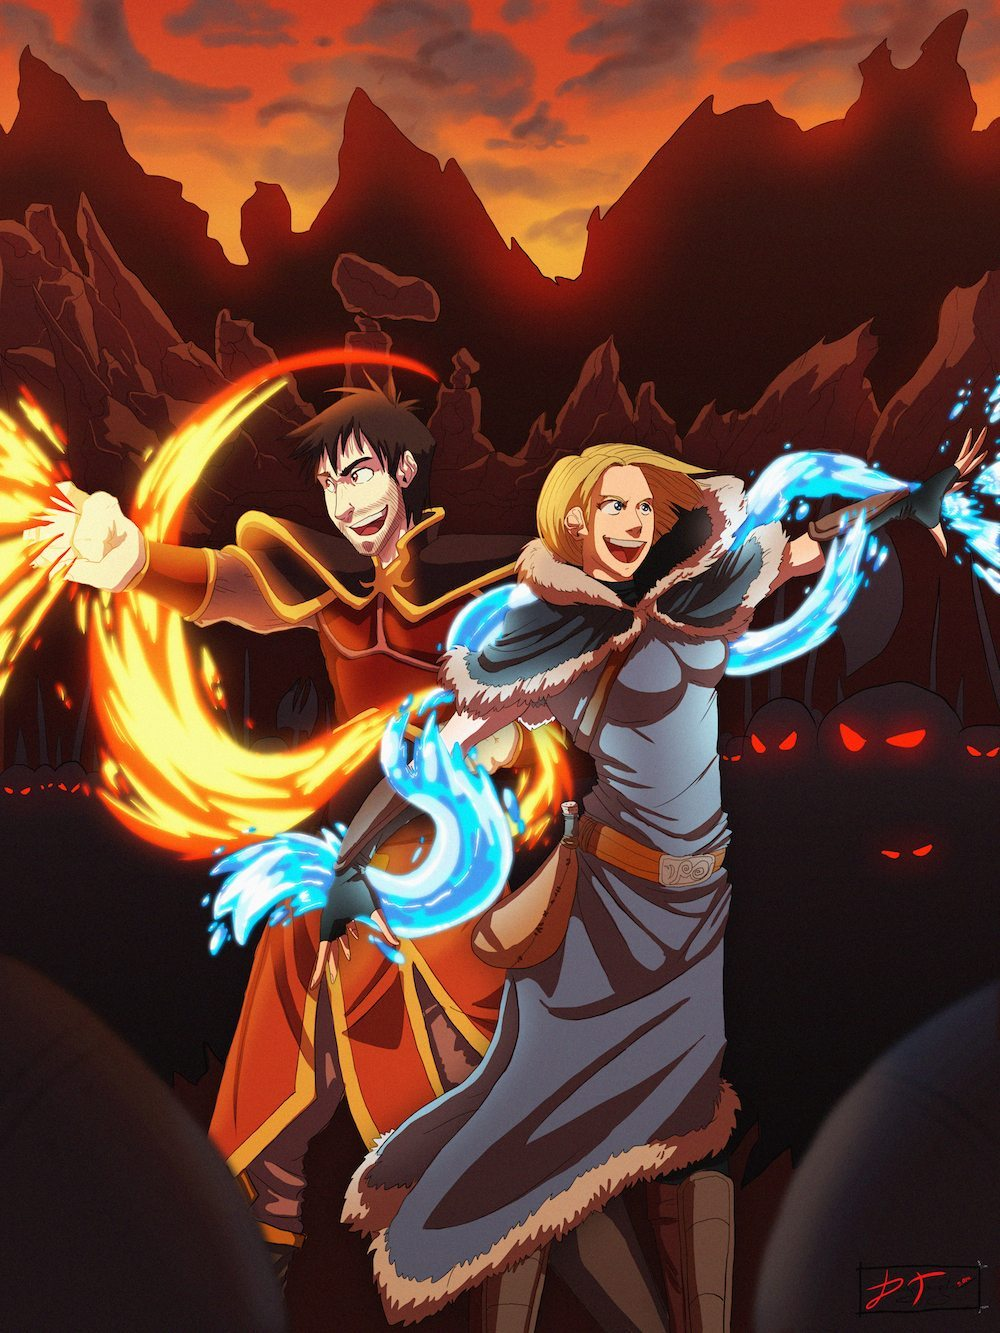 Portrait of a Fire and Water Bending Couple by Denitsa Trandeva via ArtCorgi